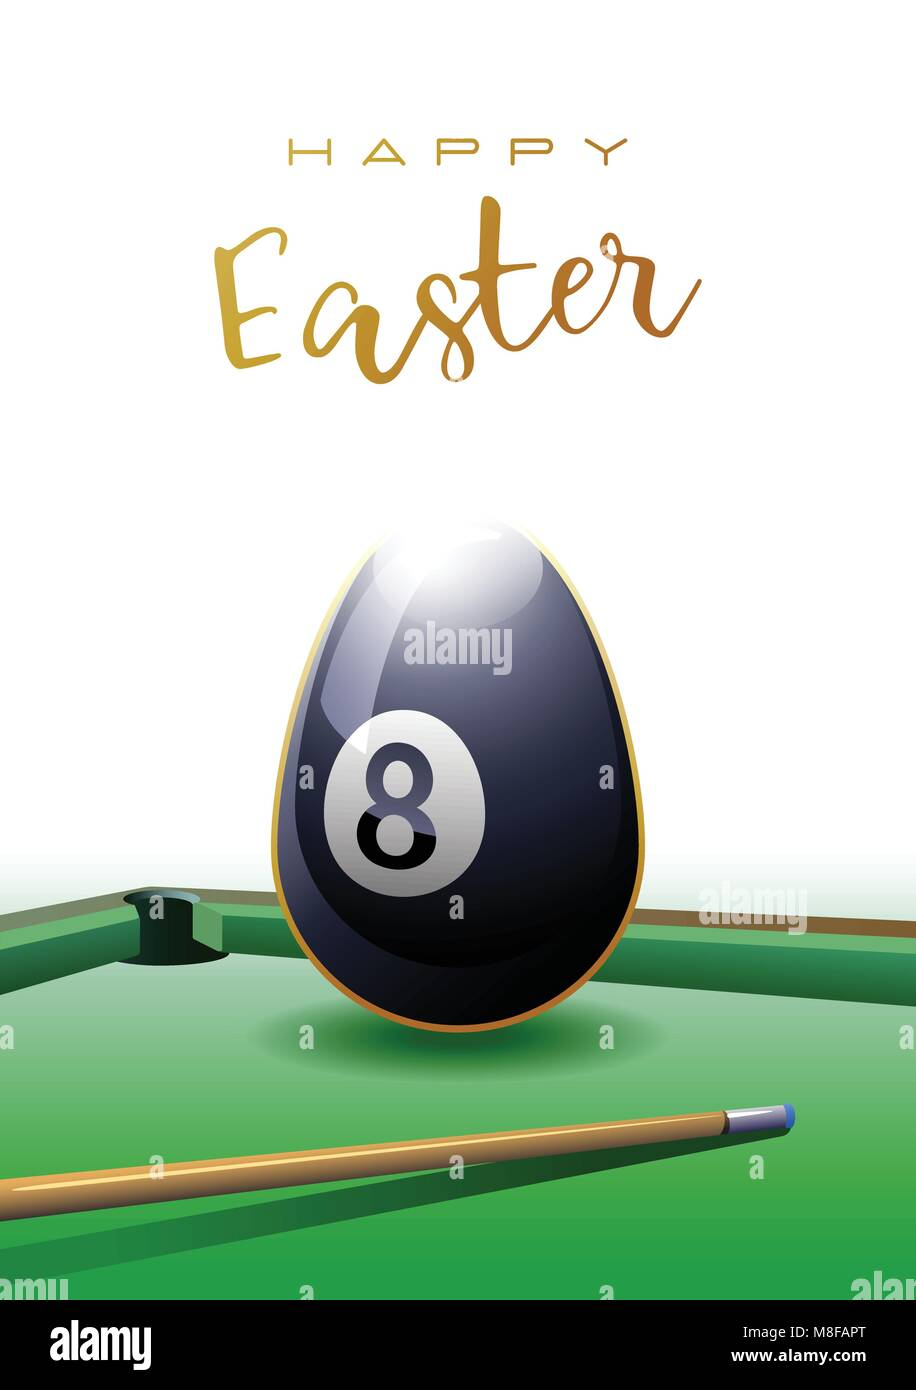 Happy Easter. Sports greeting card. A realistic Easter egg in the shape of a billiard ball. Billiard table and billiard - Stock Image